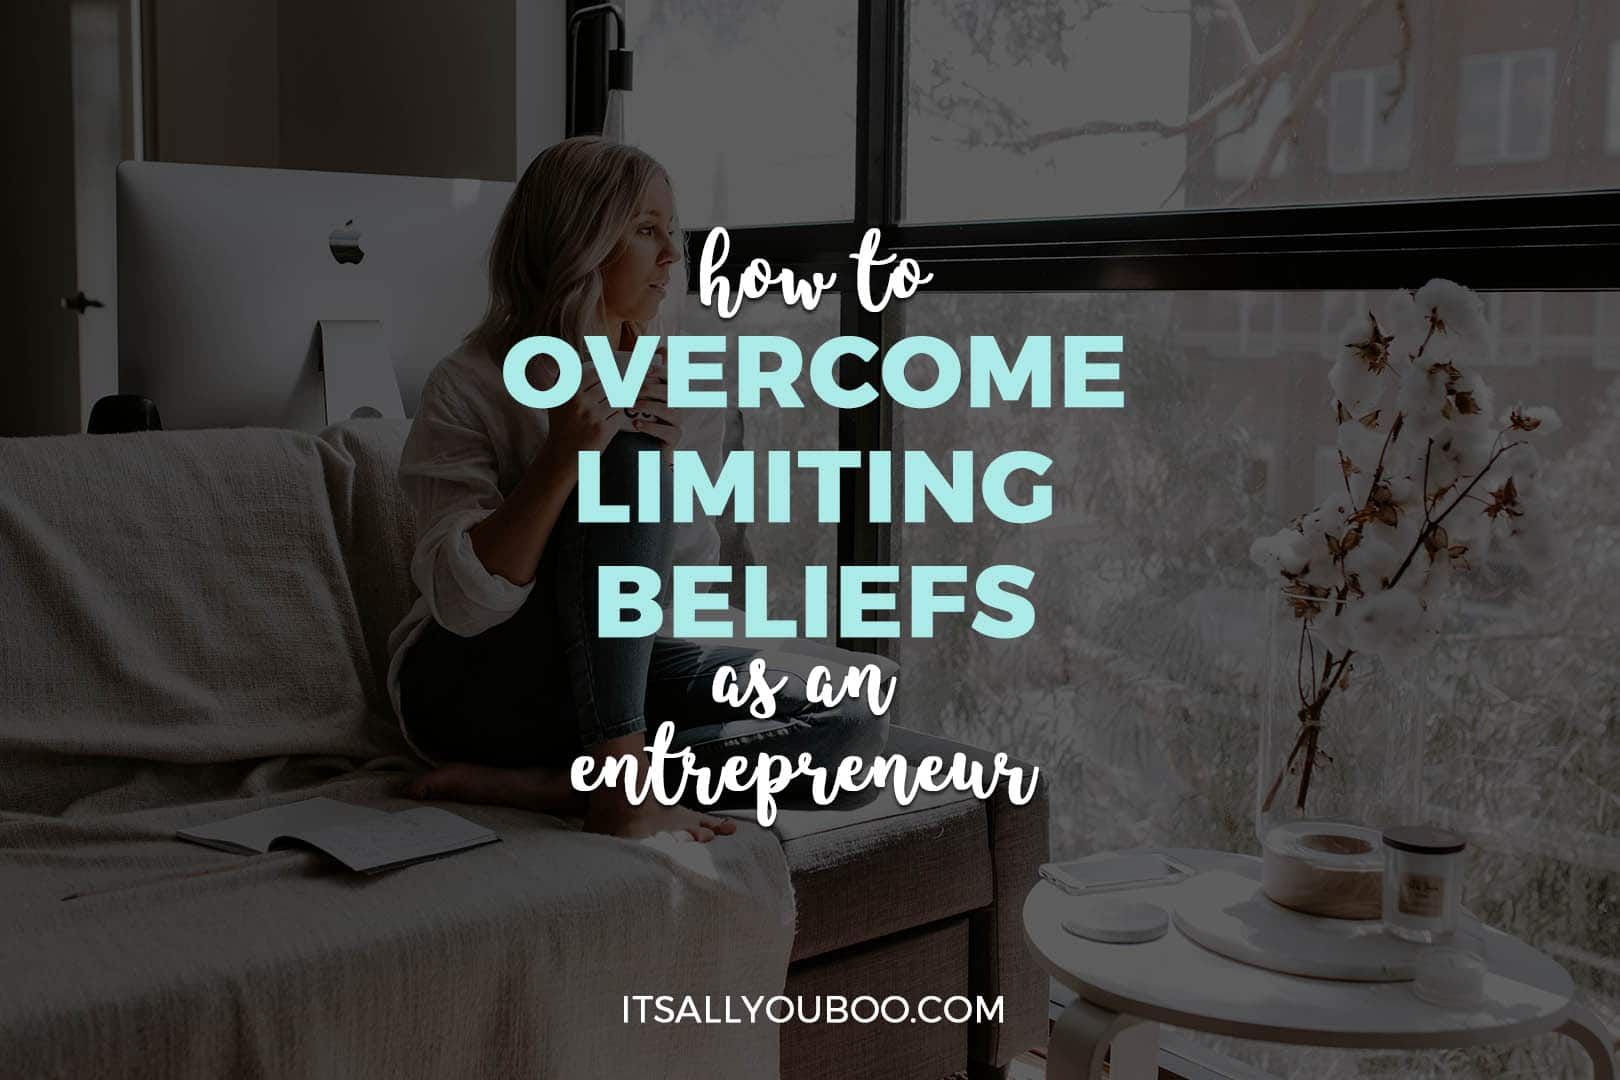 How to Overcome Limiting Beliefs as an Entrepreneur